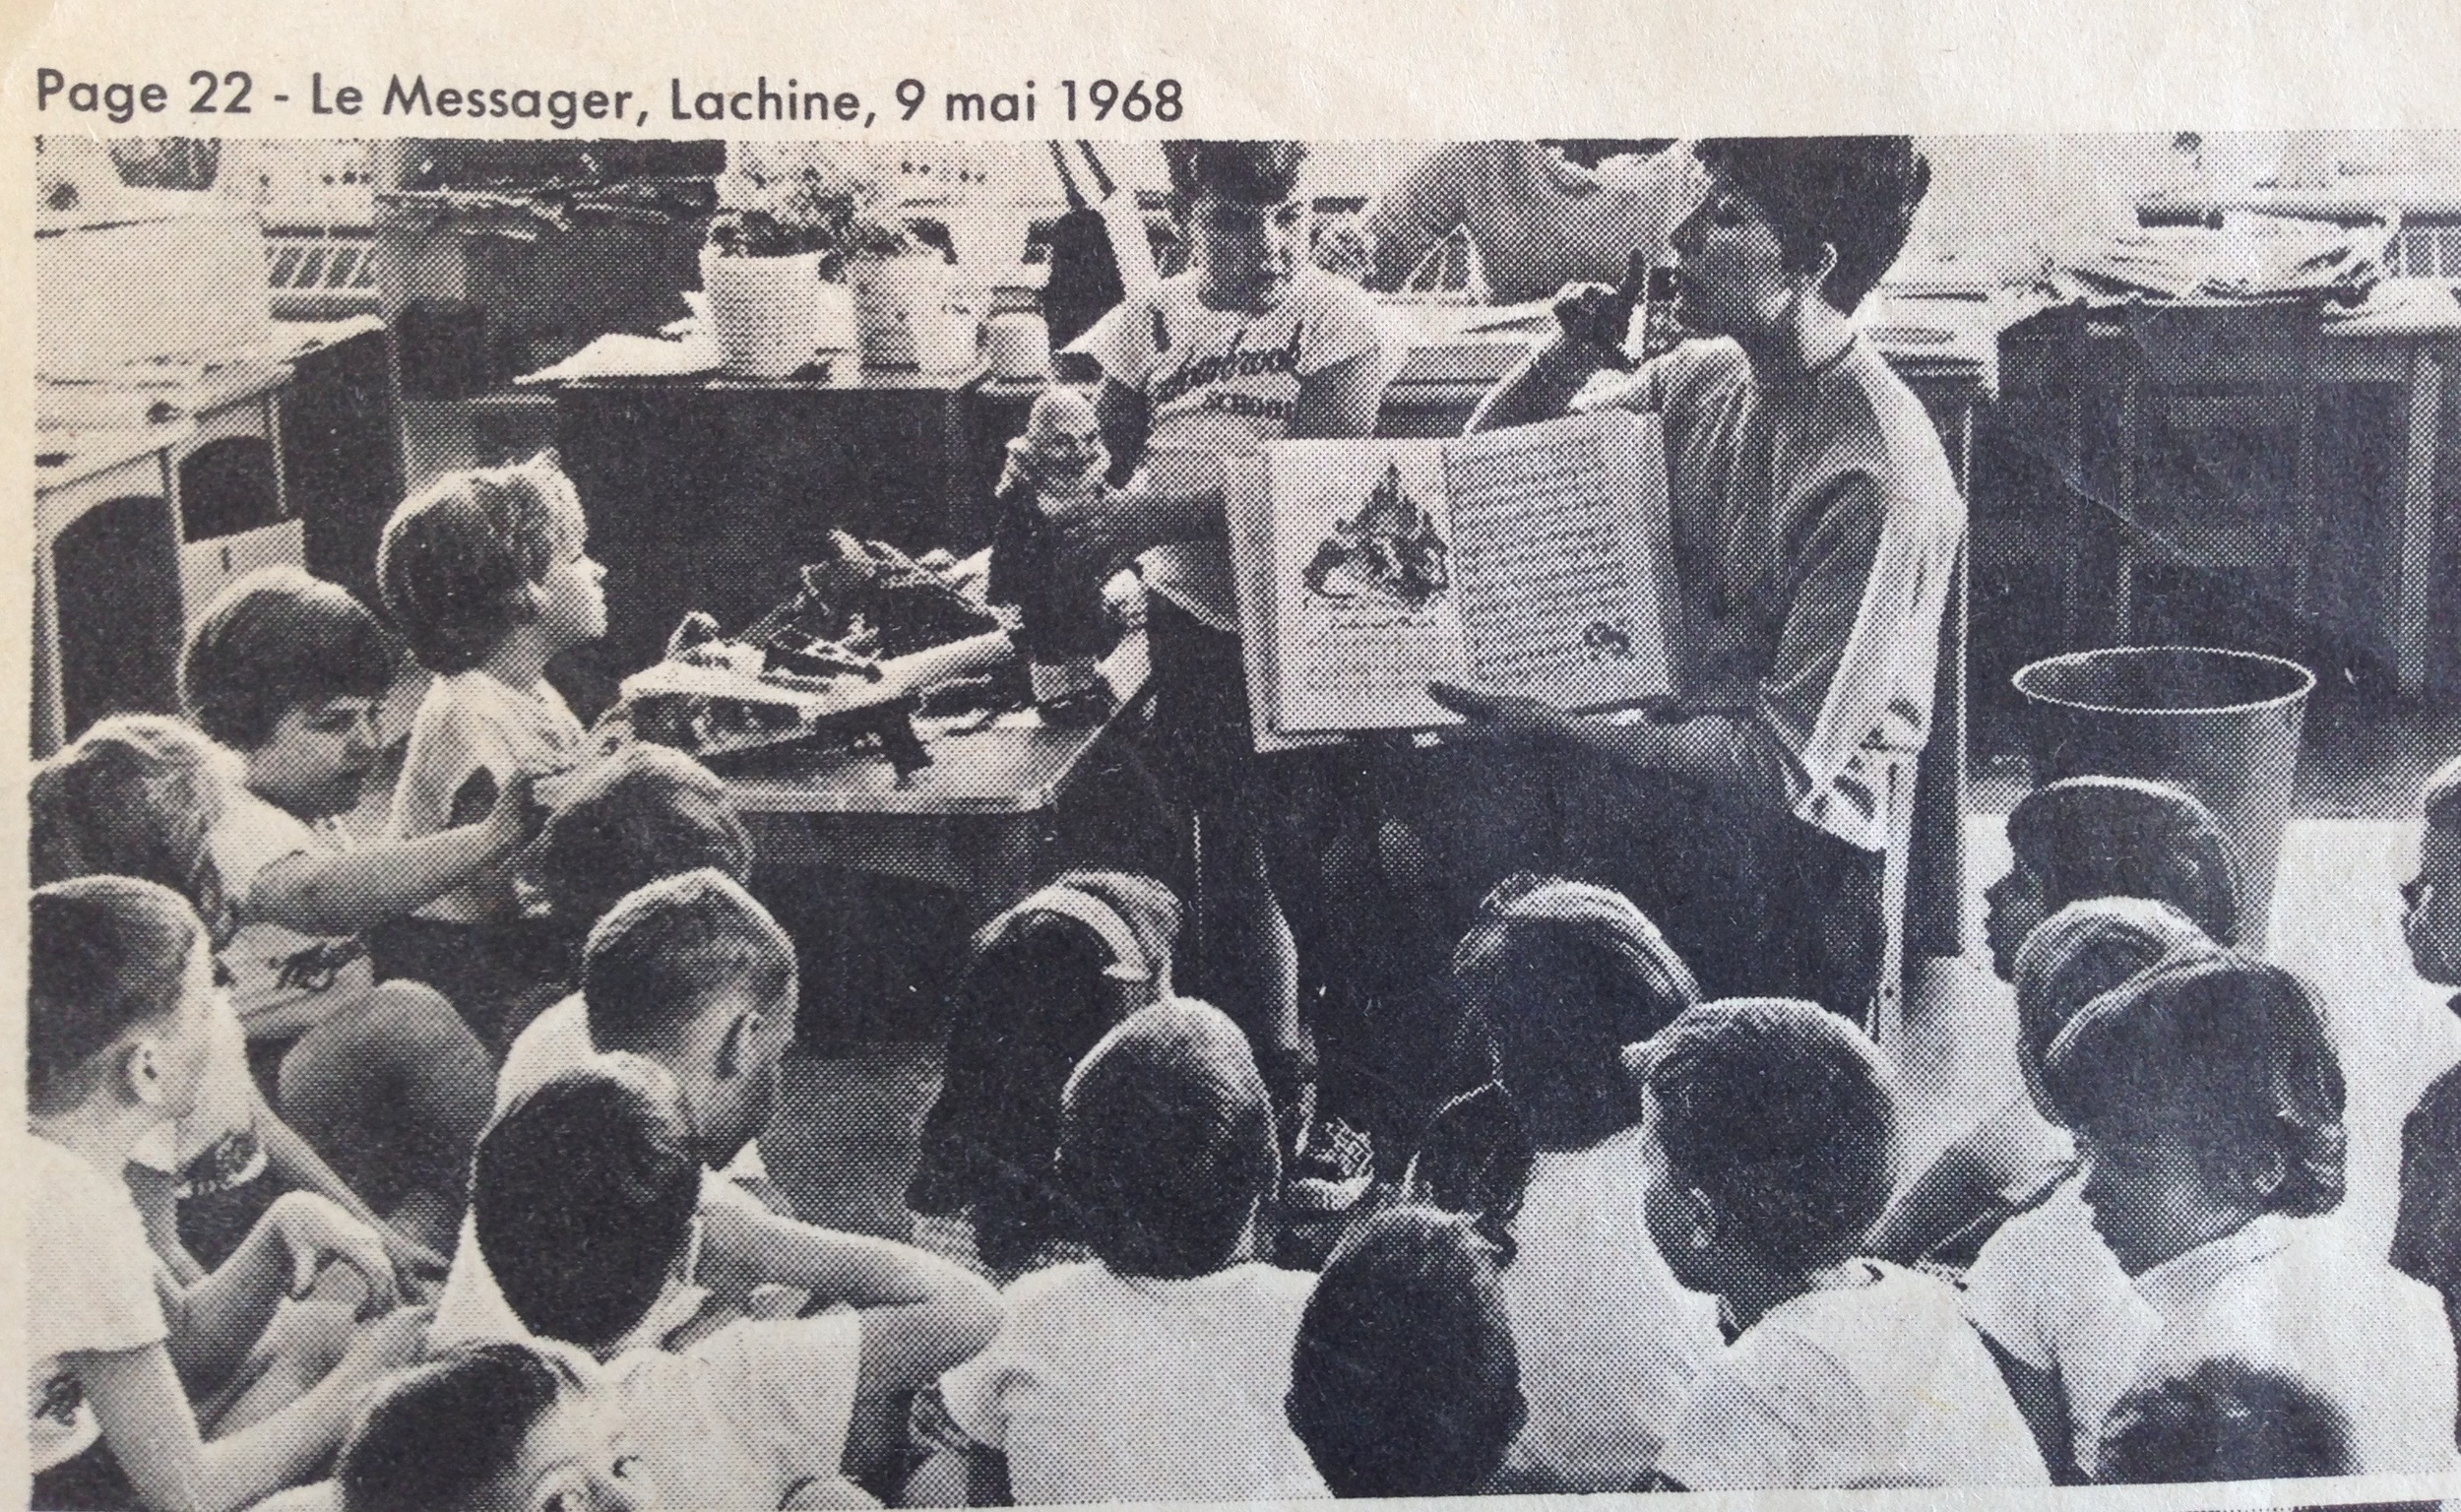 Mrs. Drummond reading a staged story for the benefit of the press, during show and tell.  That's me on the left, getting a closer look at Ricky's weird wizard doll that he brought in.  My toys were mostly cut outs of Bible characters stuck onto a flannel cloth, so seeing a somewhat pagan action figure was pretty exciting .